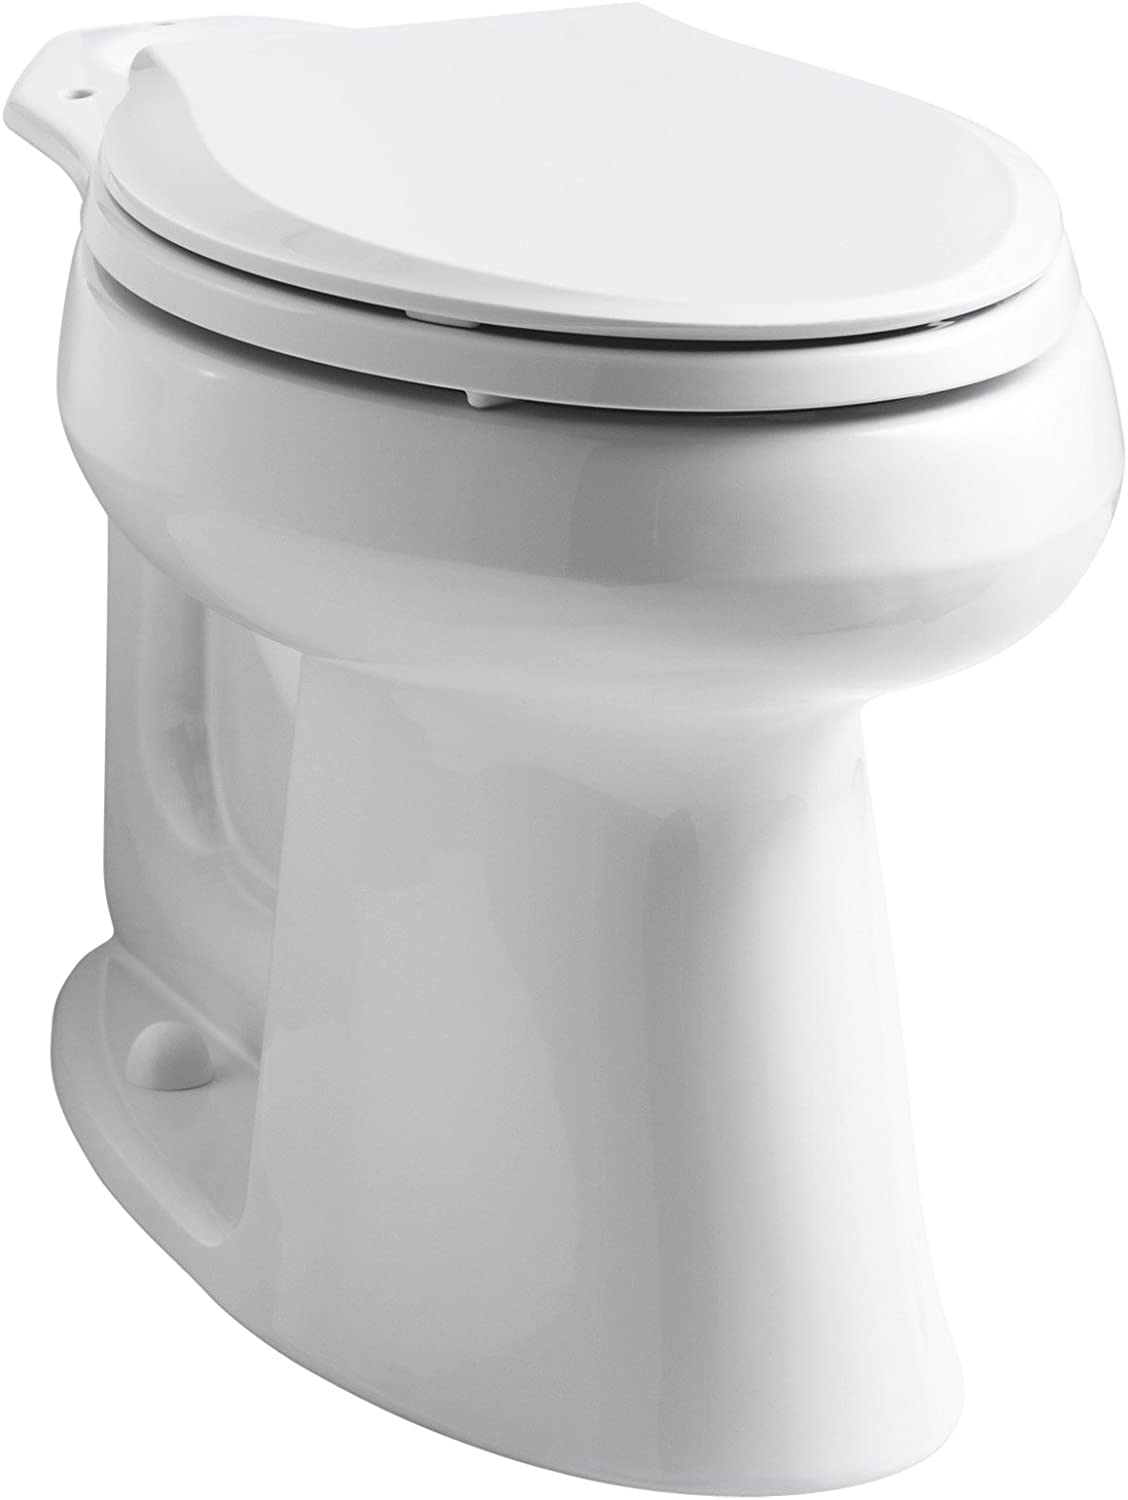 Kohler K-4373-0 Wellworth Comfort Height Class Five Elongated Bowl Only with 10